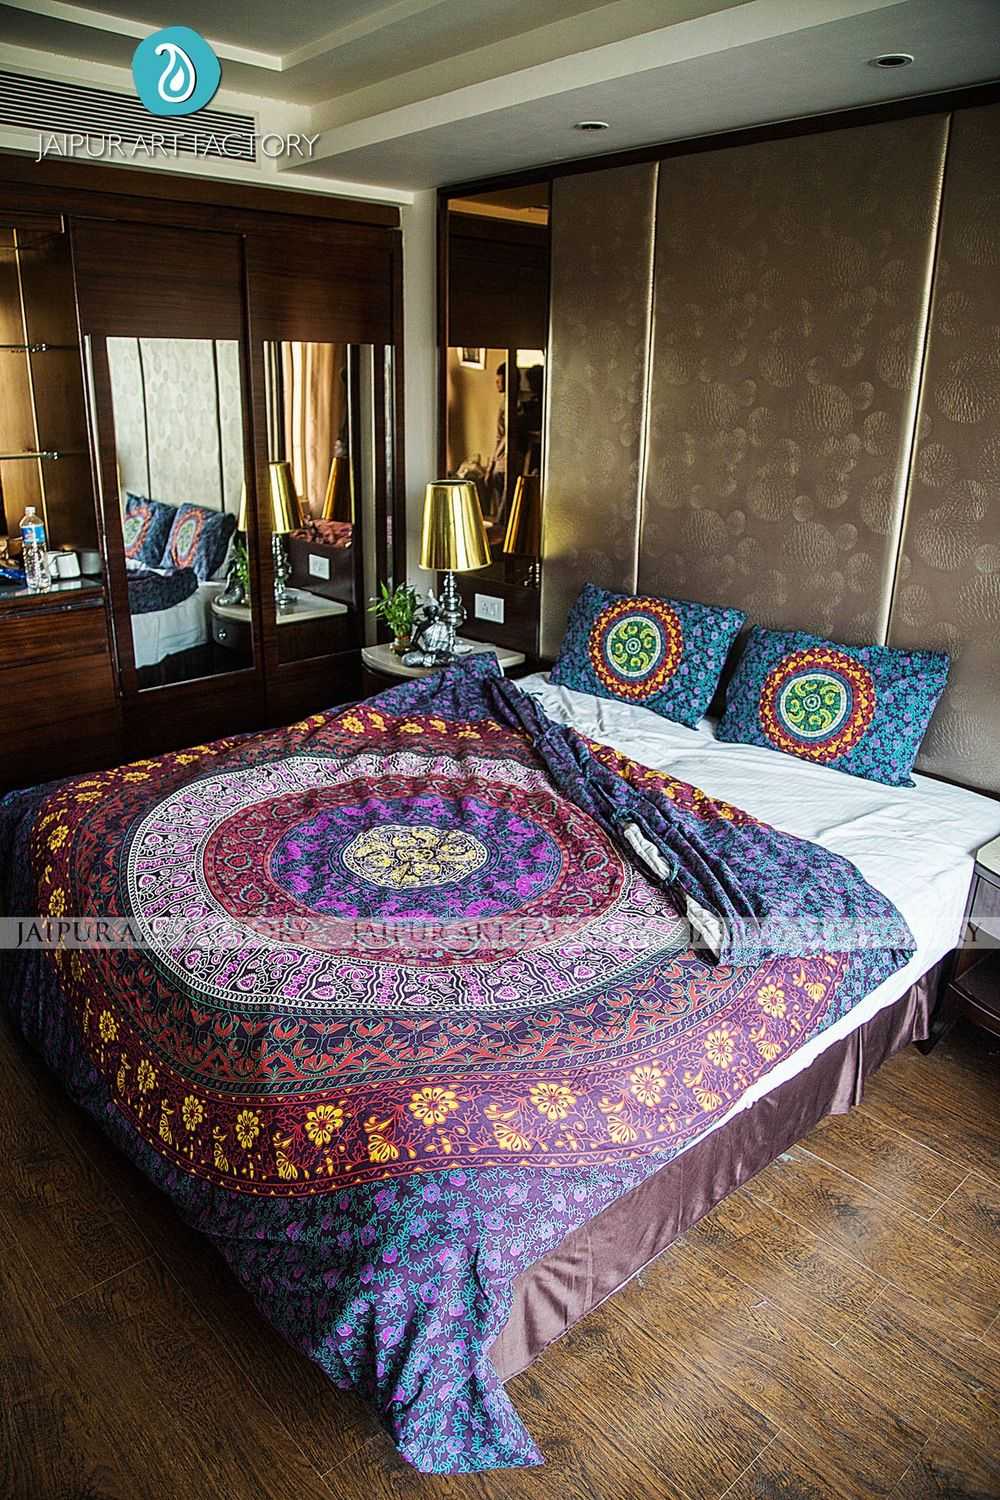 prithvi mandala duvet cover prithvi refers to mother earth in